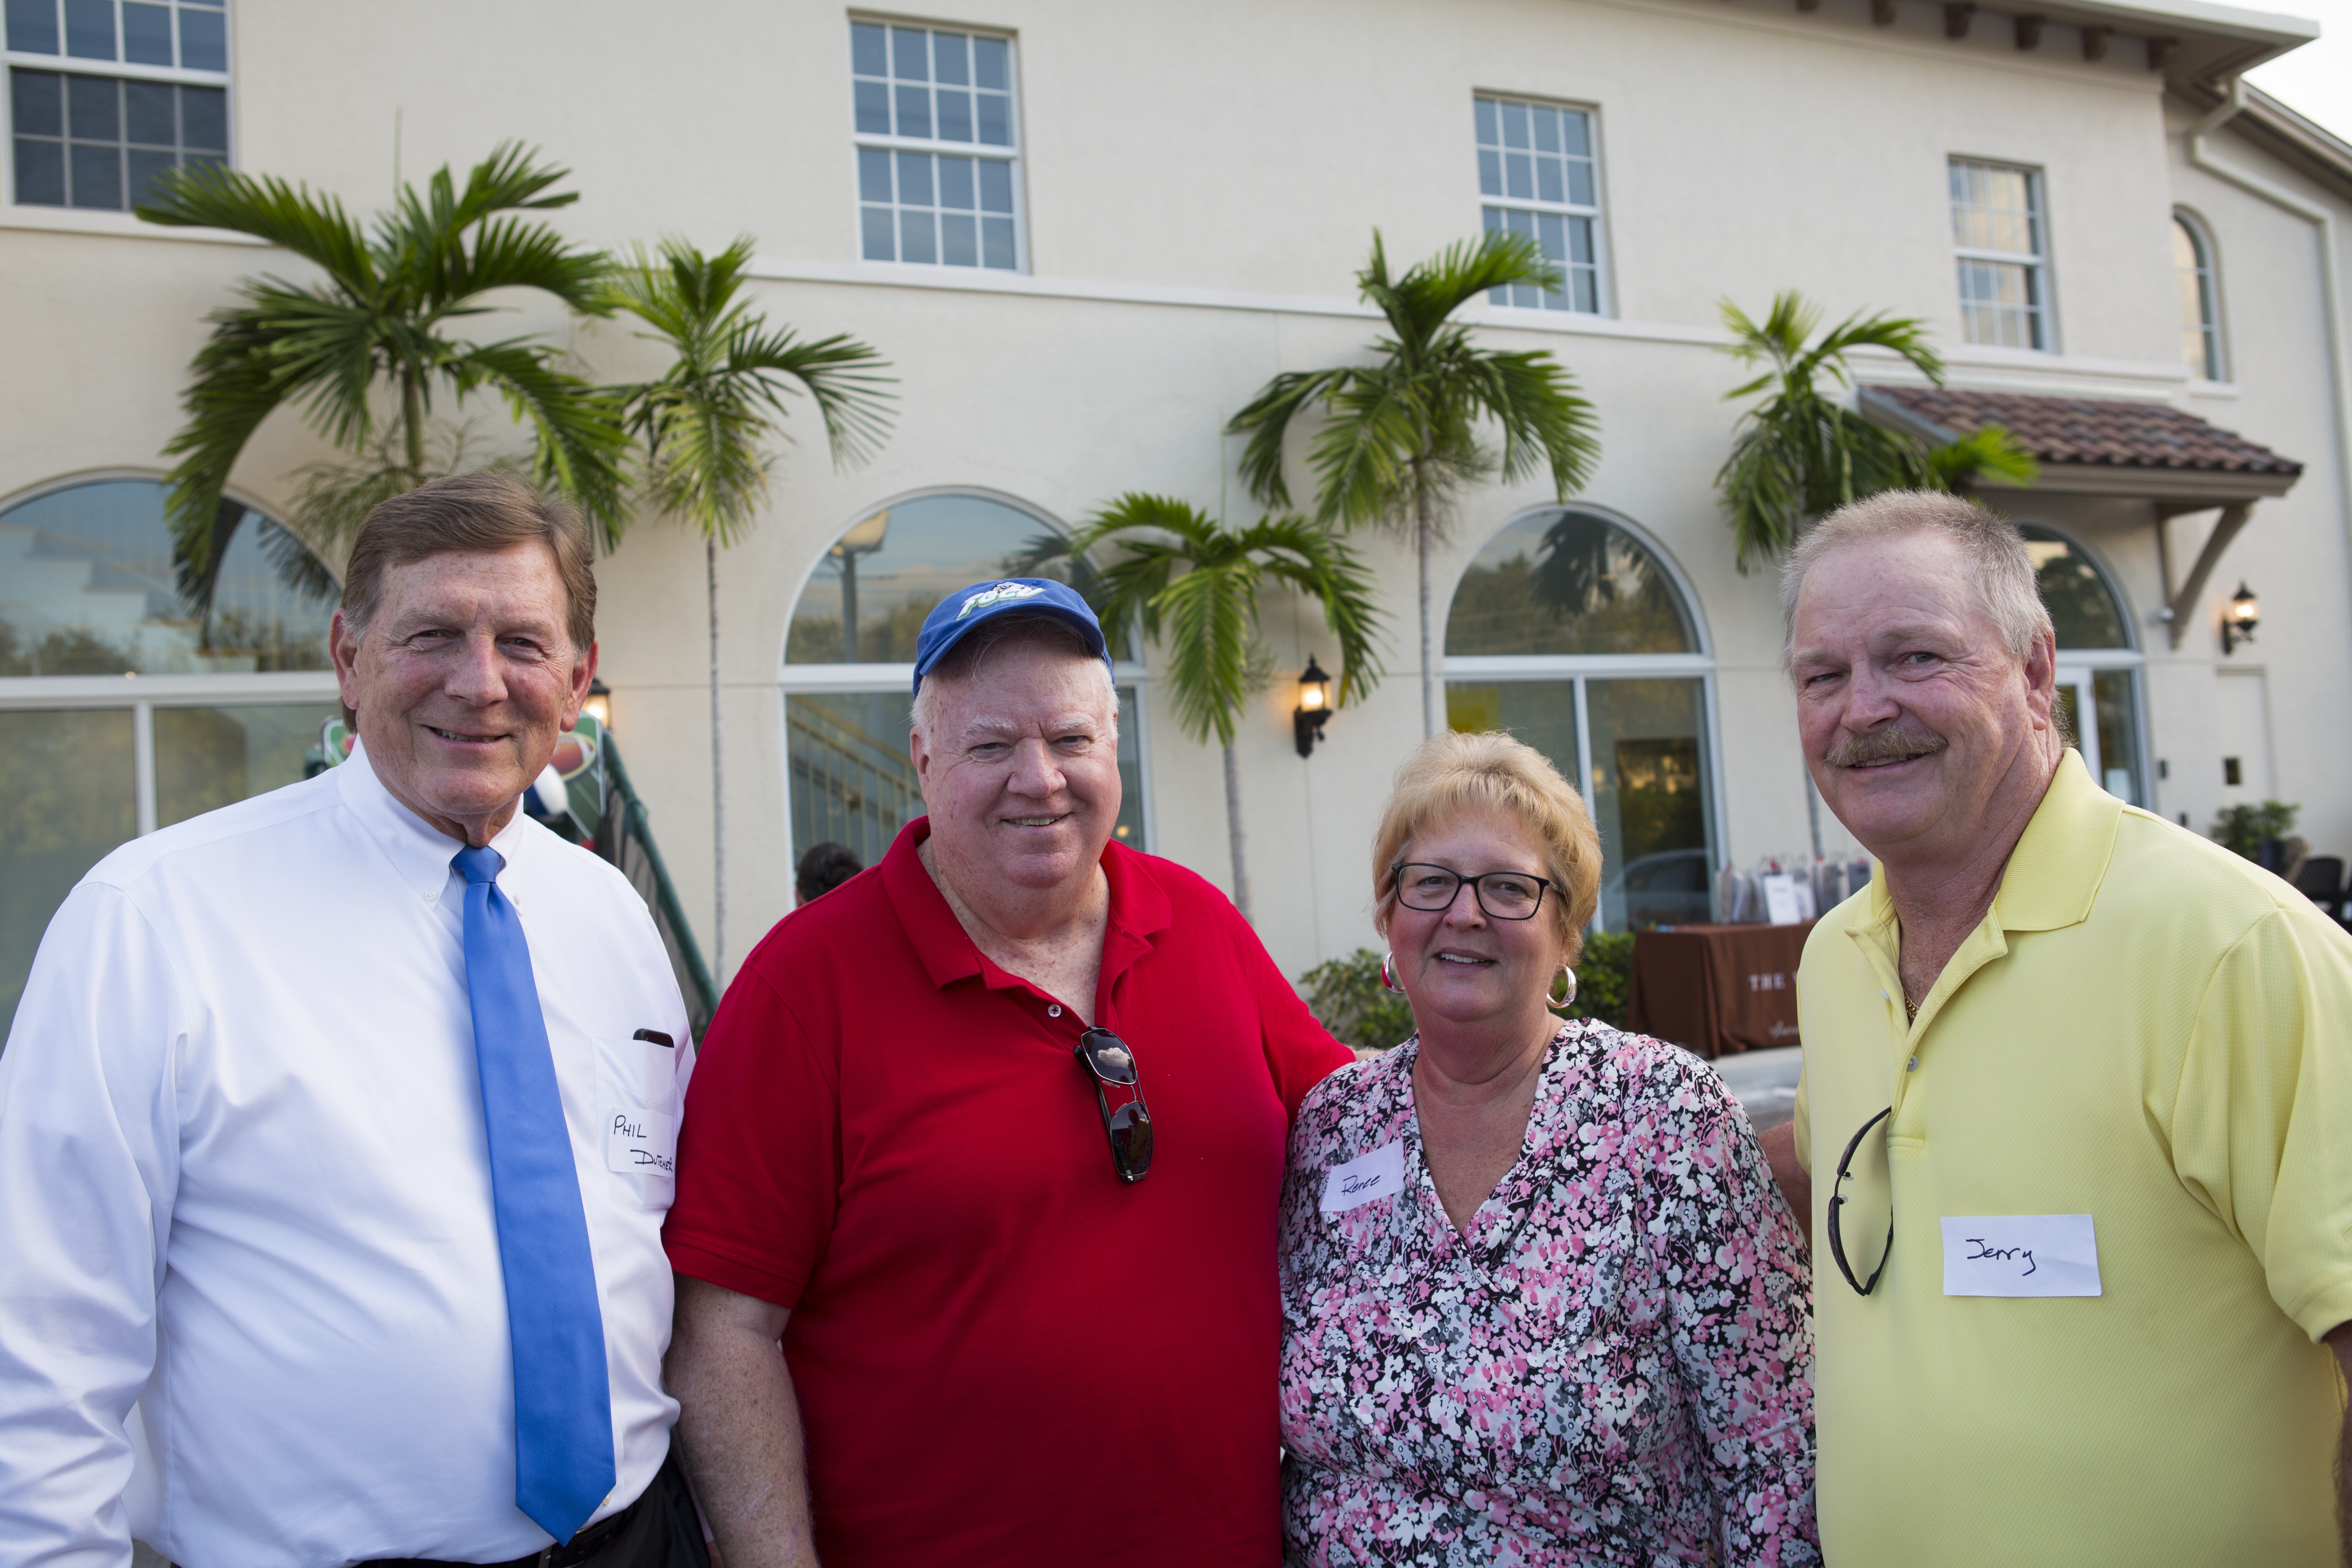 Phil-Dutcher-Kevin-Dolan-Renee-and-Jerry-Thigpin